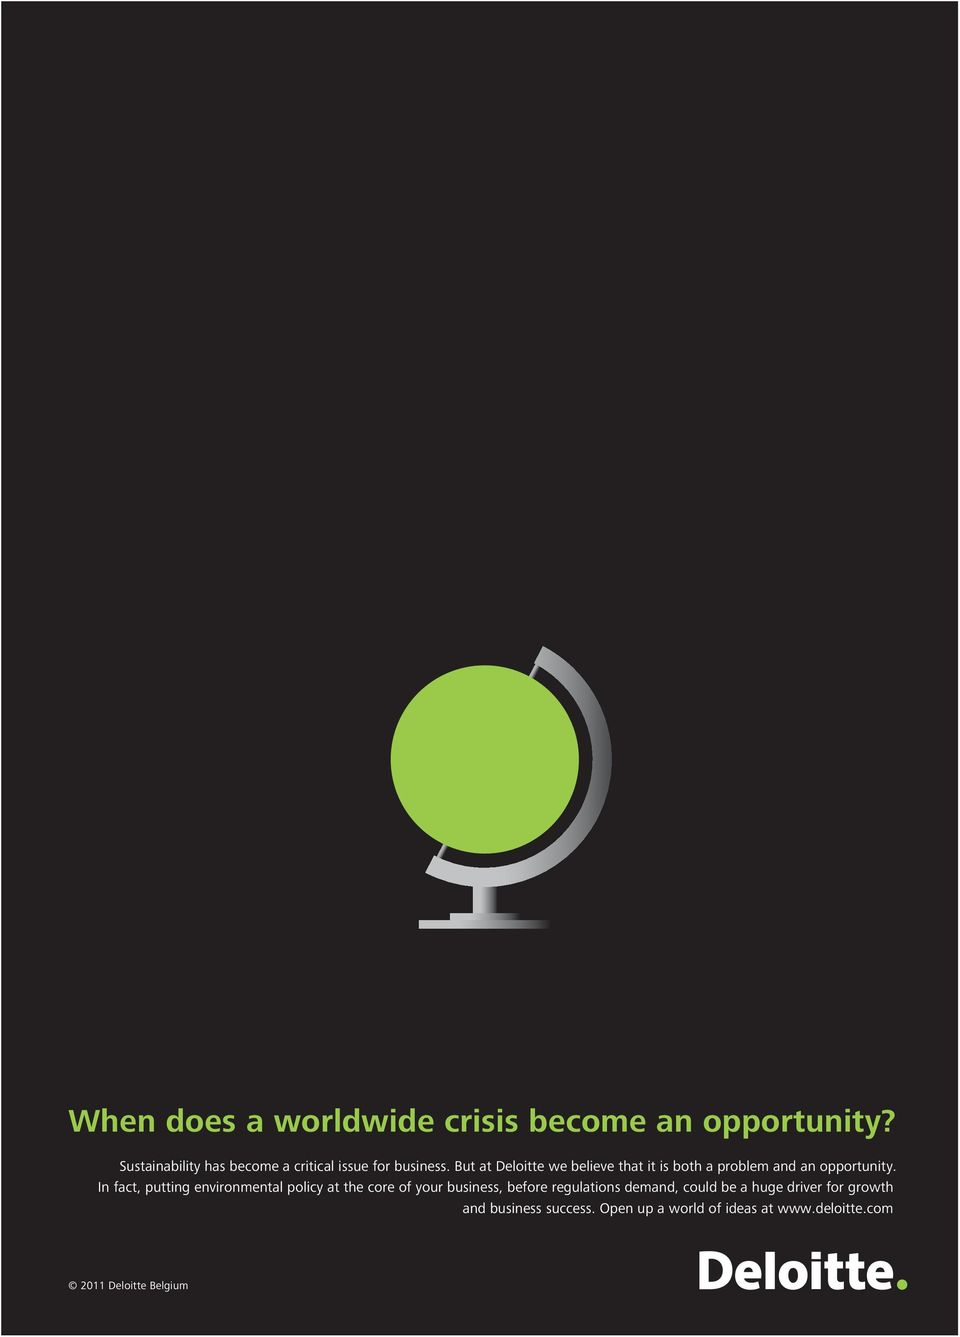 But at Deloitte we believe that it is both a problem and an opportunity.